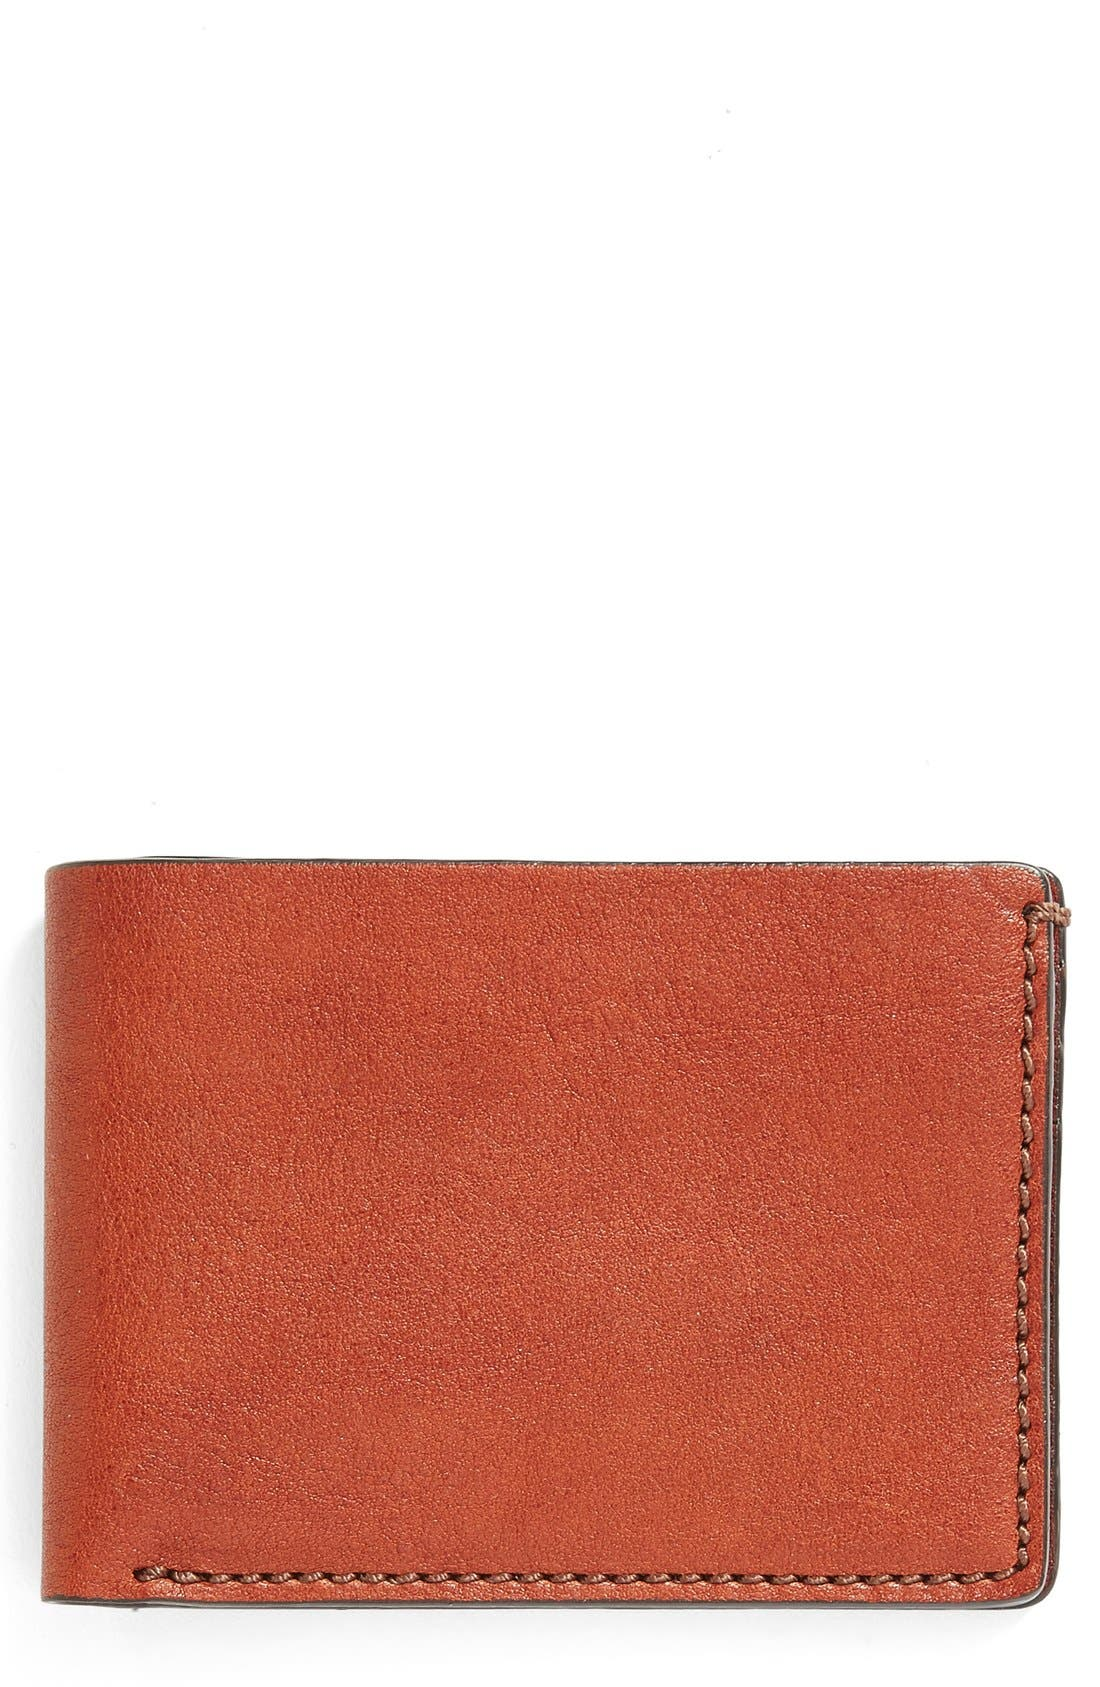 Leather Bifold Wallet,                         Main,                         color, Cognac